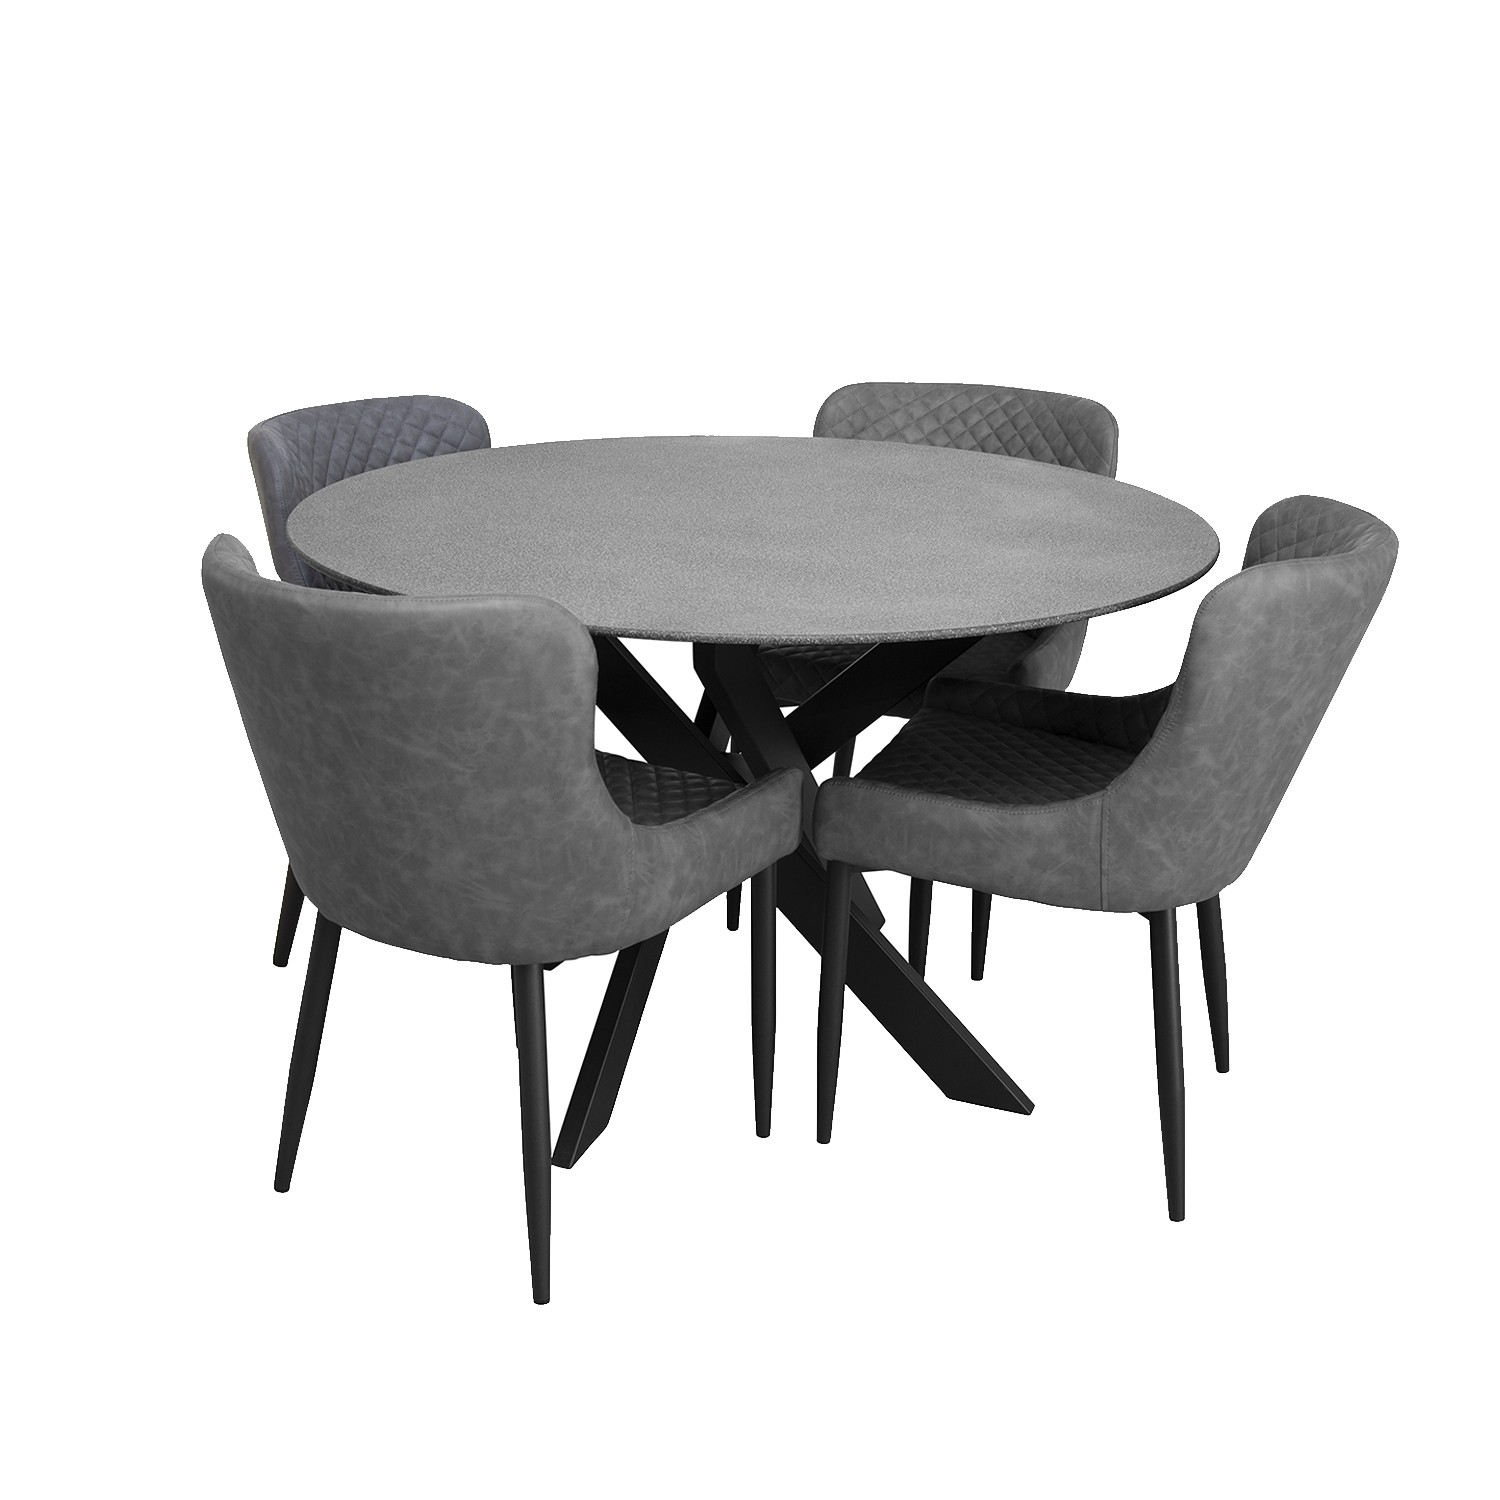 York Round Dining Set with 4 Chairs